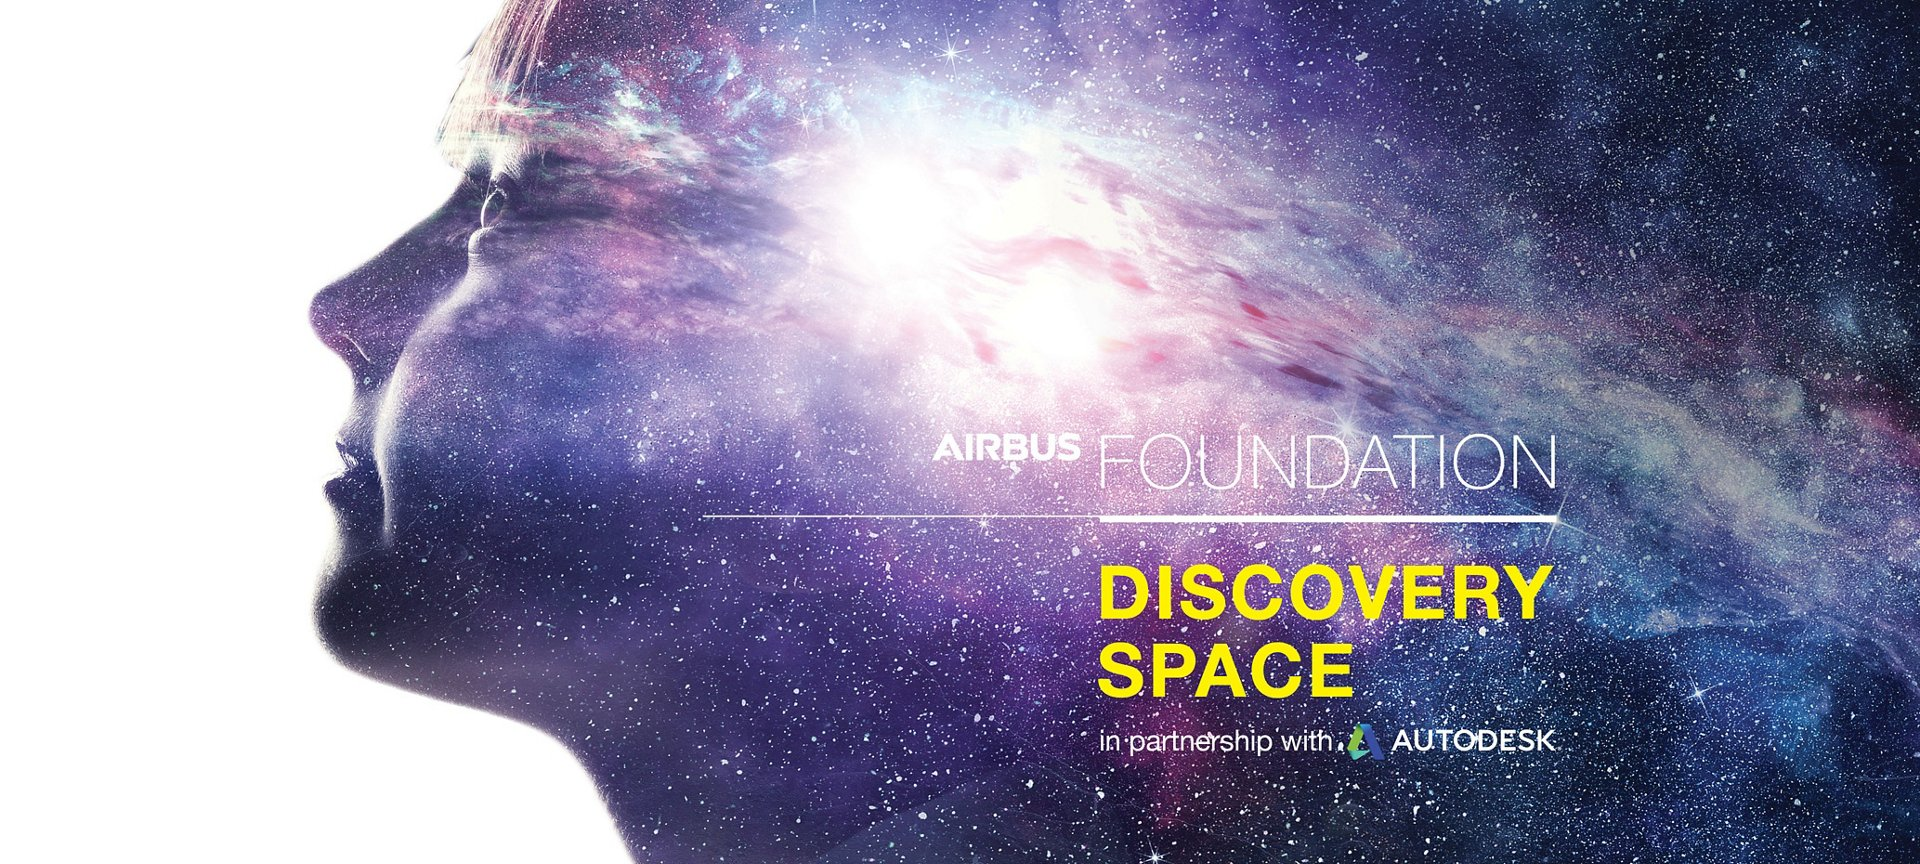 Discovery Space - Company - Airbus - Company - Airbus